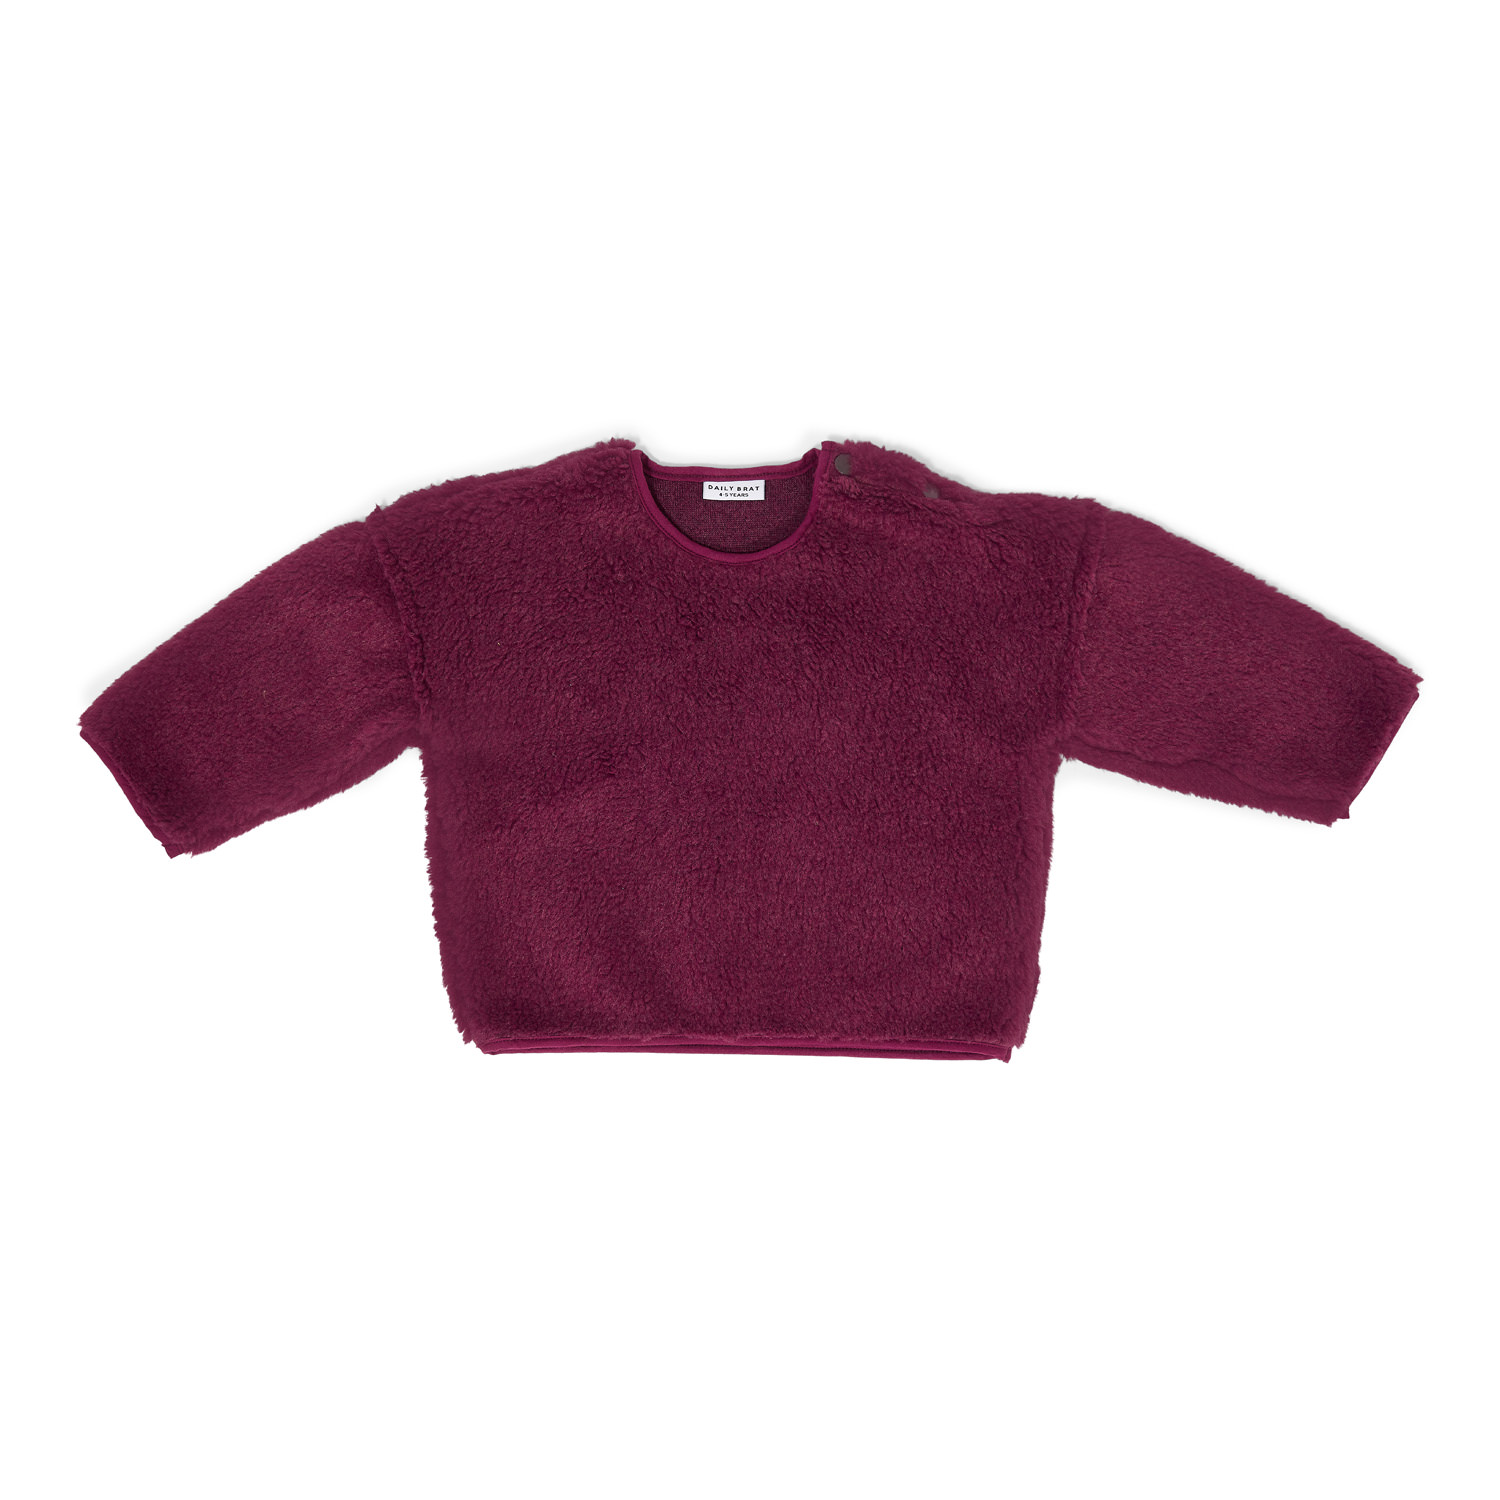 Teddy oversized sweater mulberry front.jpg